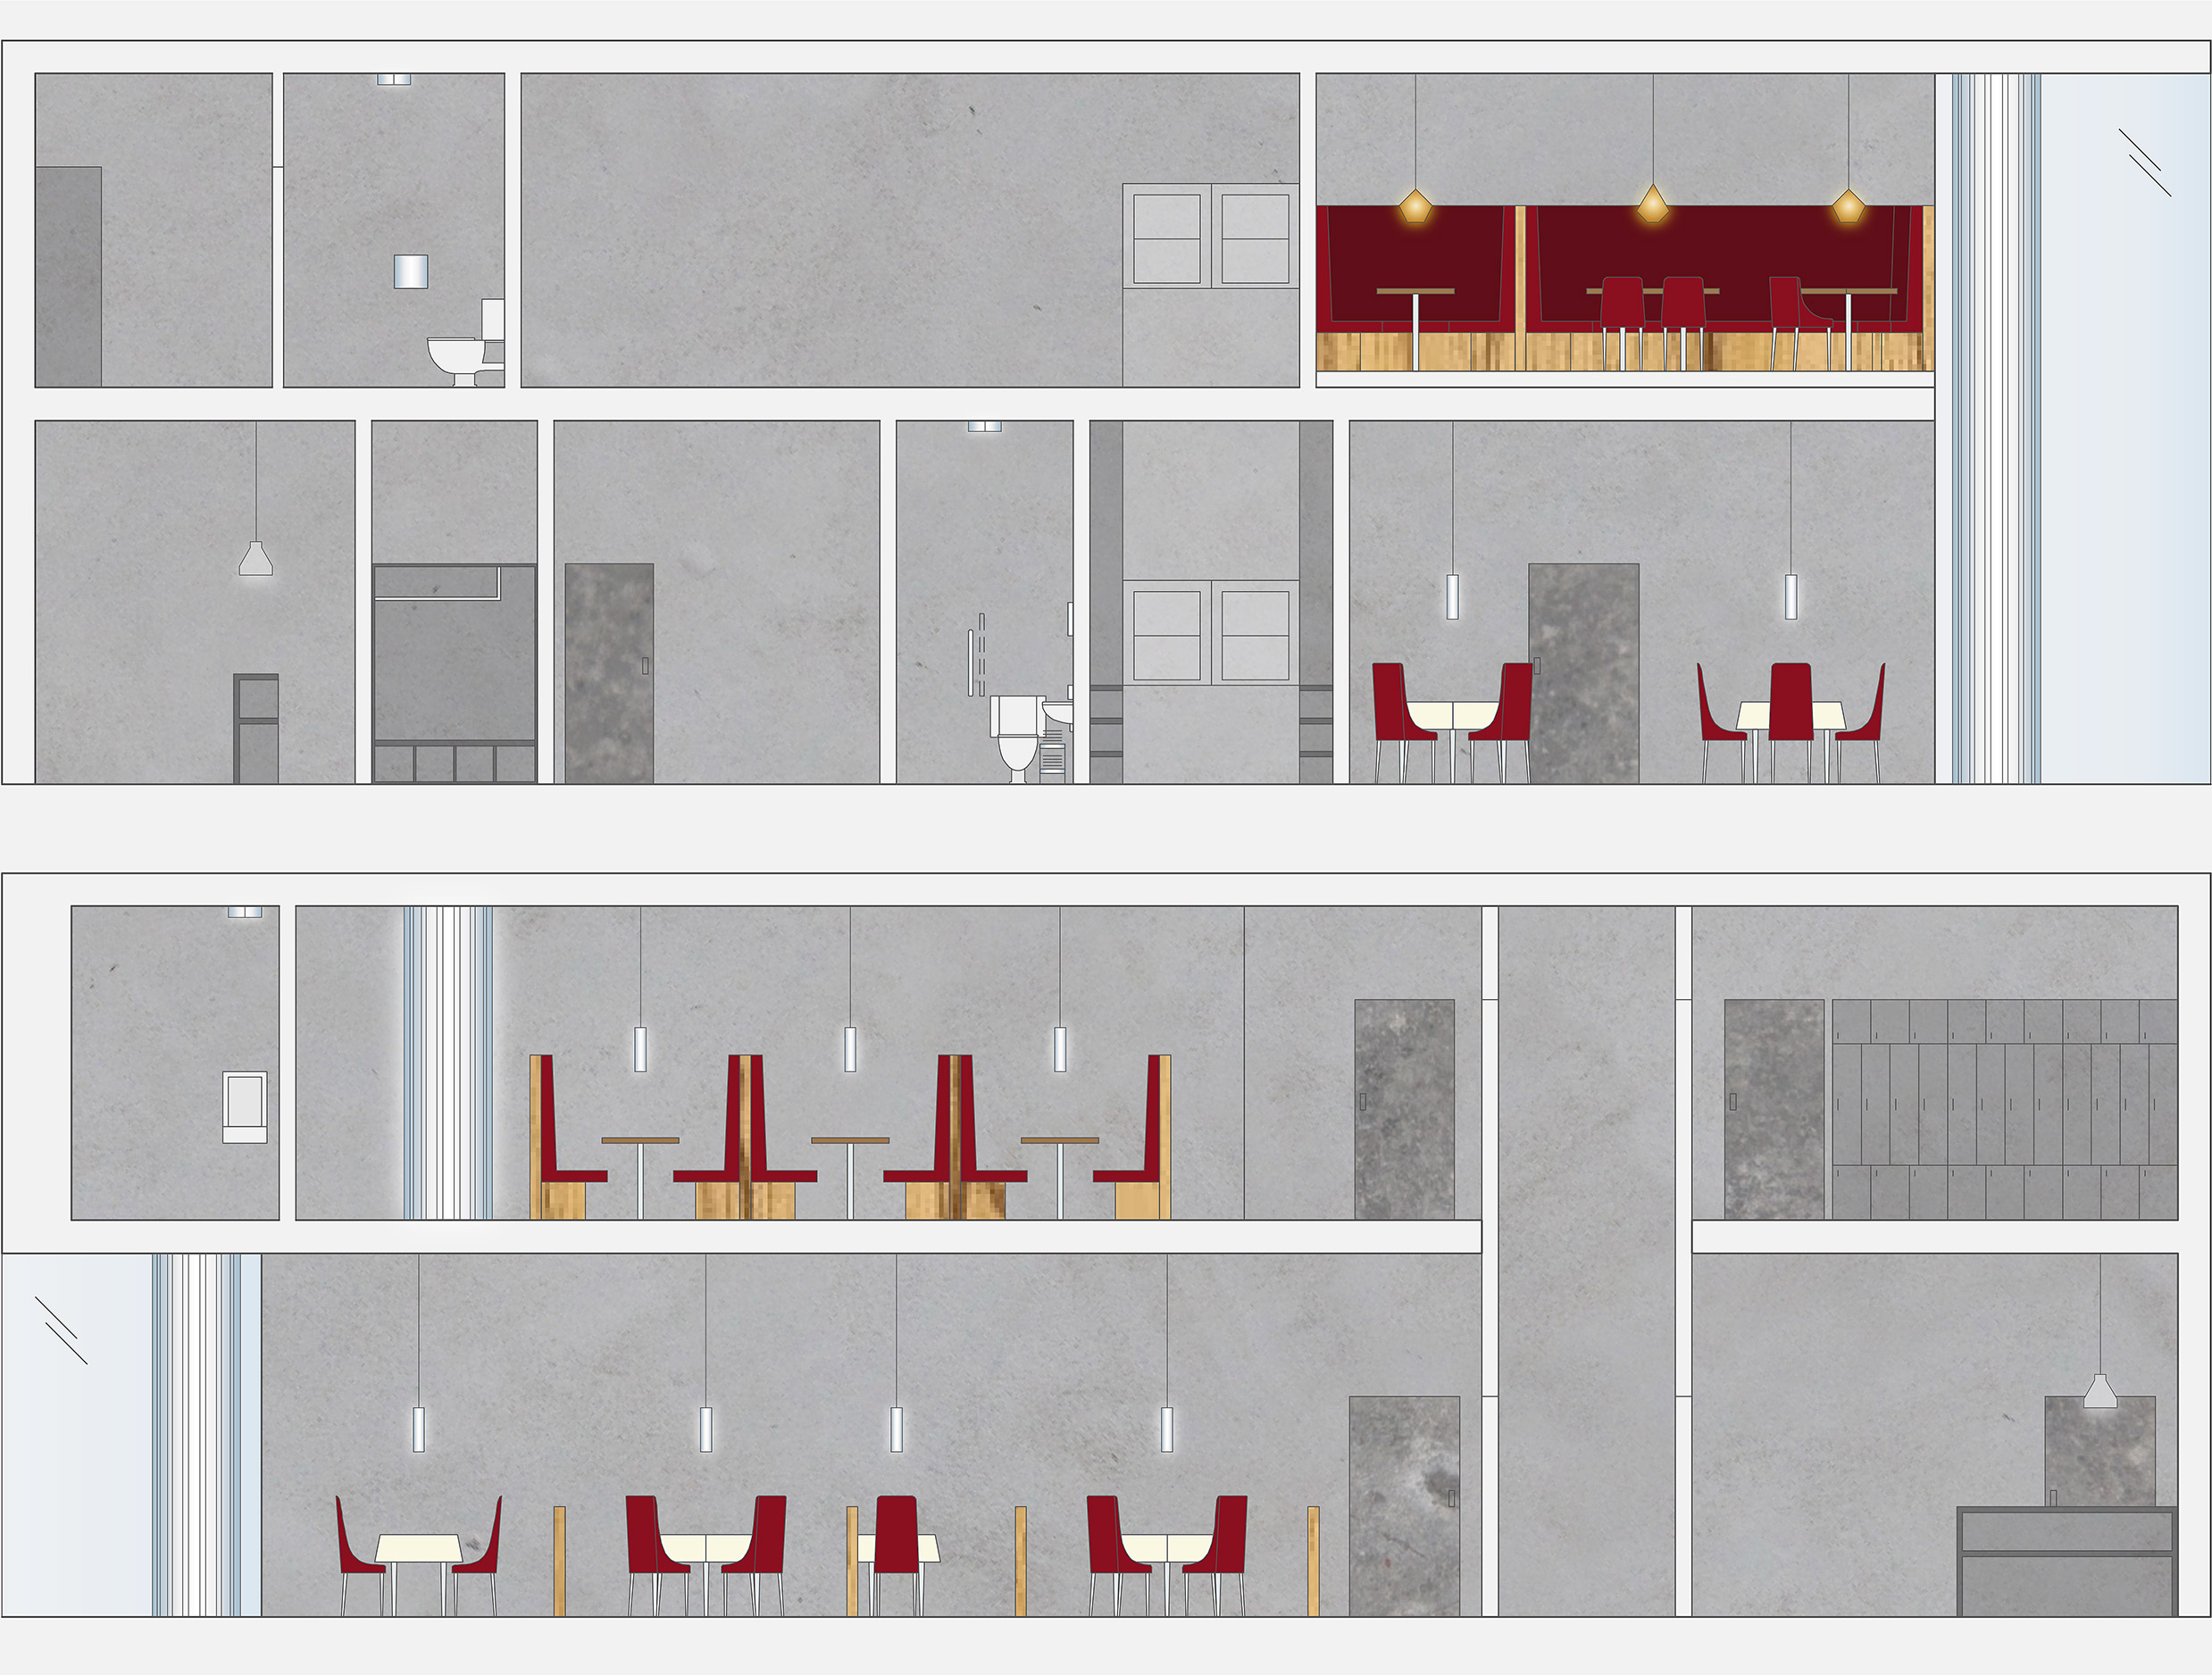 Interior elevations for Prohibit restaurant